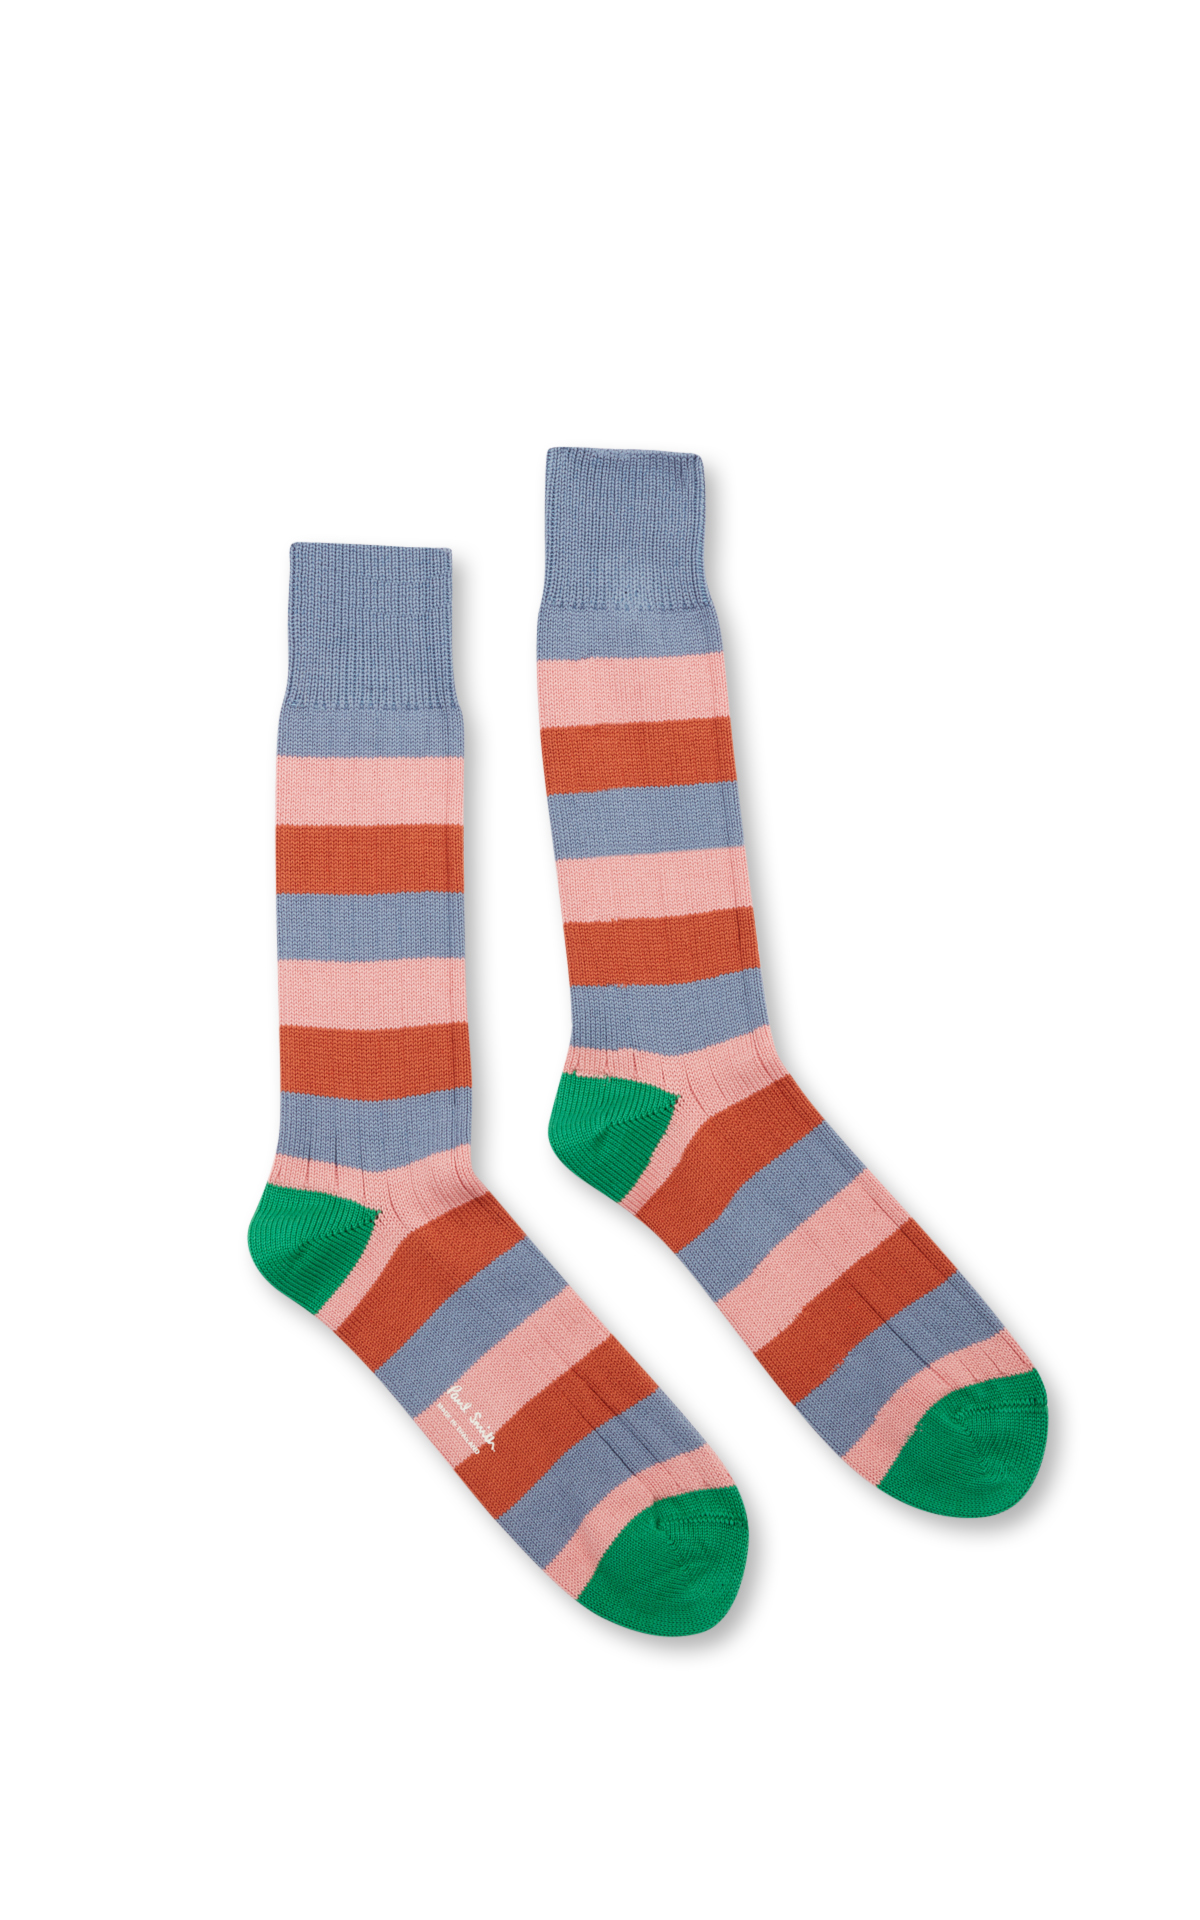 Paul Smith Wool socks with tricolour stripes